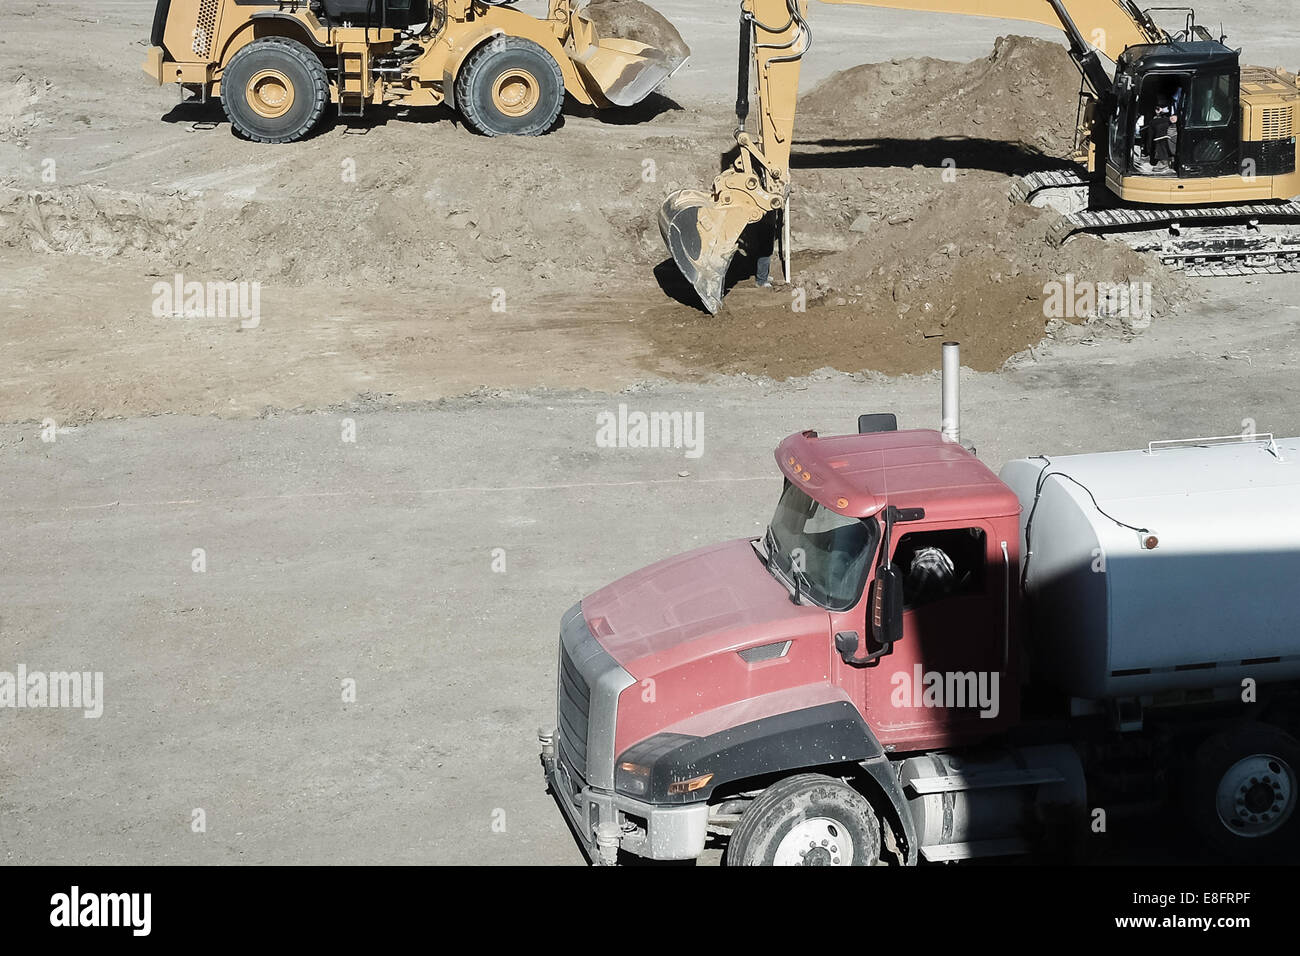 Construction equipment at construction site - Stock Image